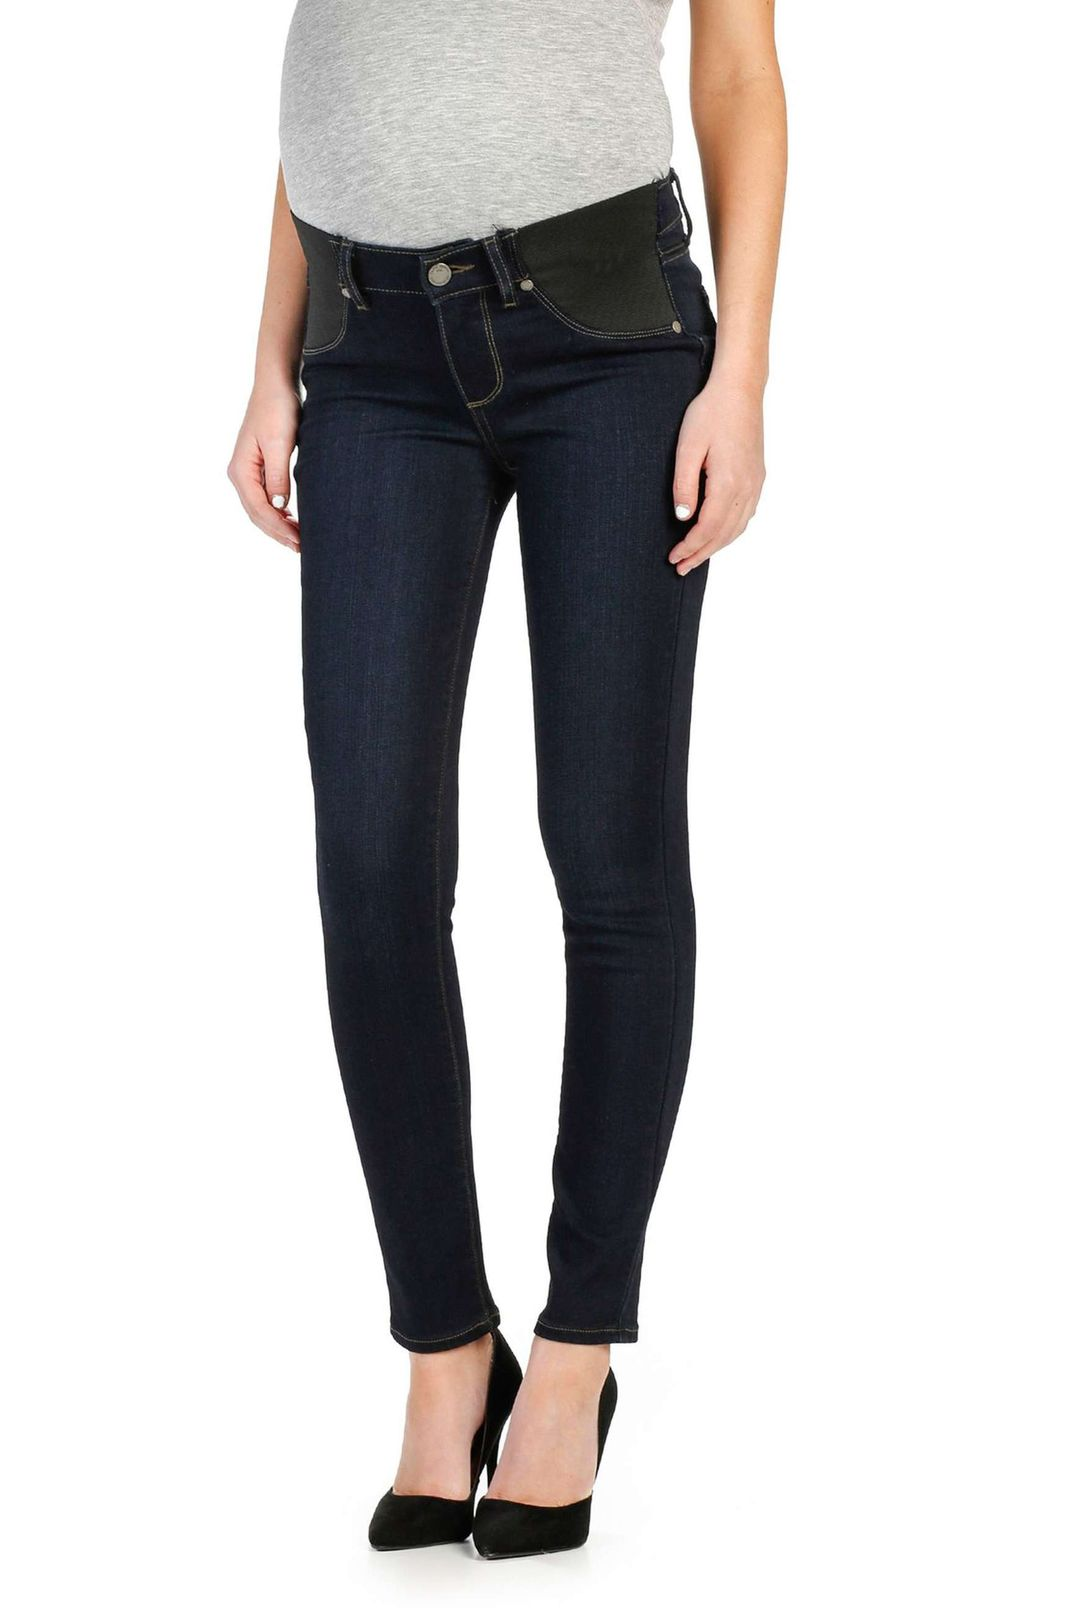 c0d3becd8b734 Paige Transcend Verdugo Ankle Skinny Maternity Jeans